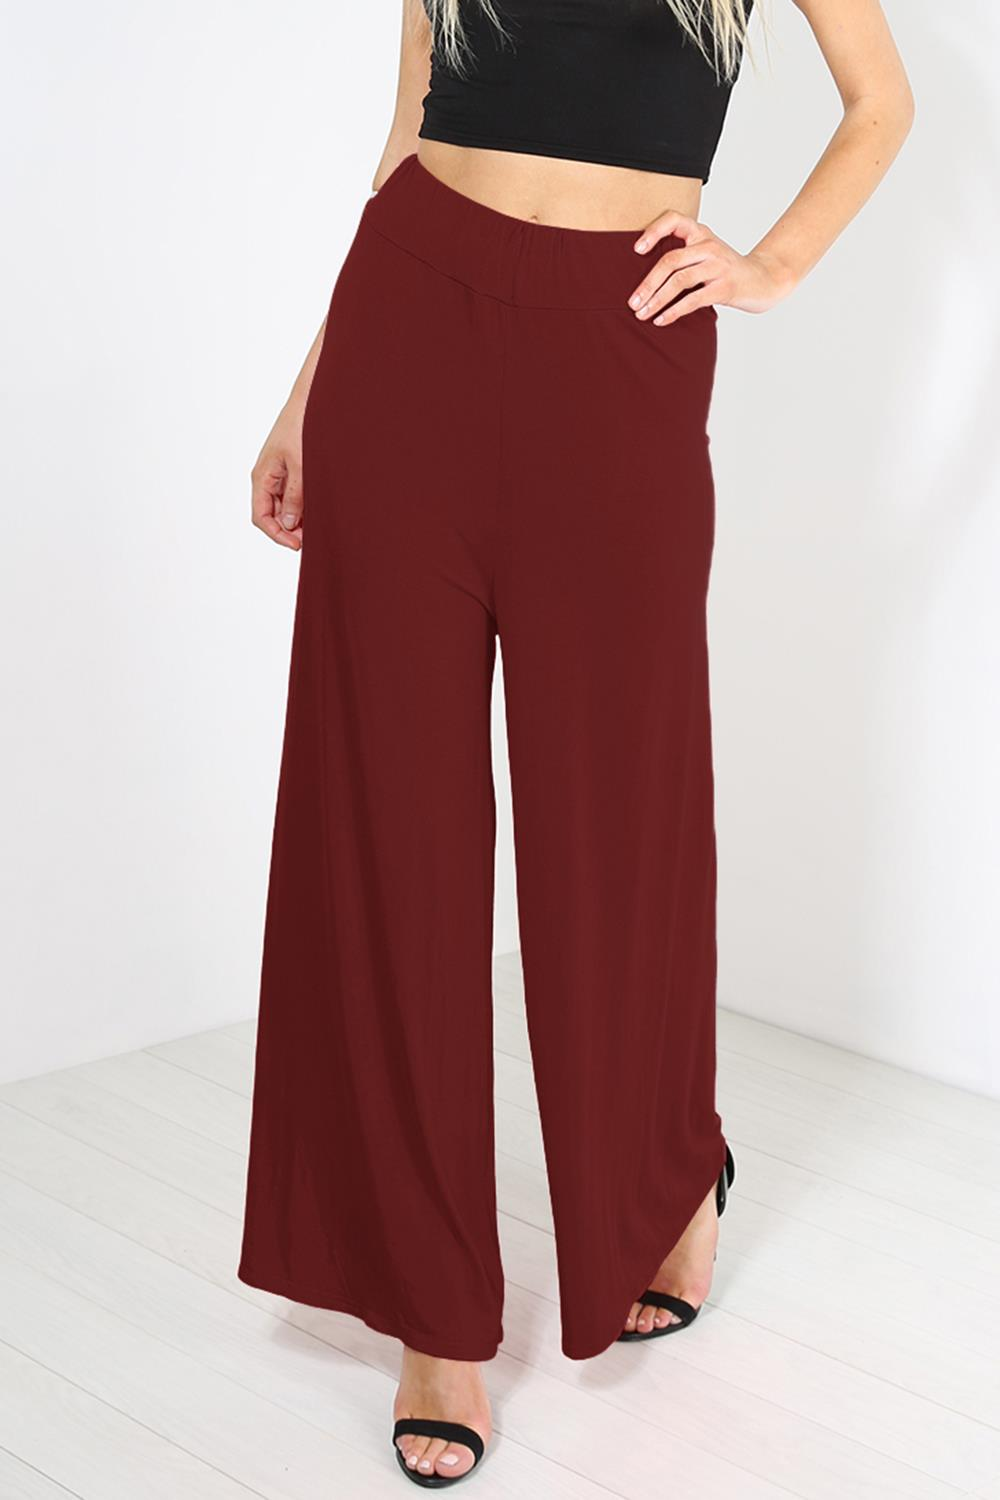 LADIES PLUS SIZE PLAIN PALAZZO WIDE LEG LADIES FLARED TROUSERS PANTS 8-26